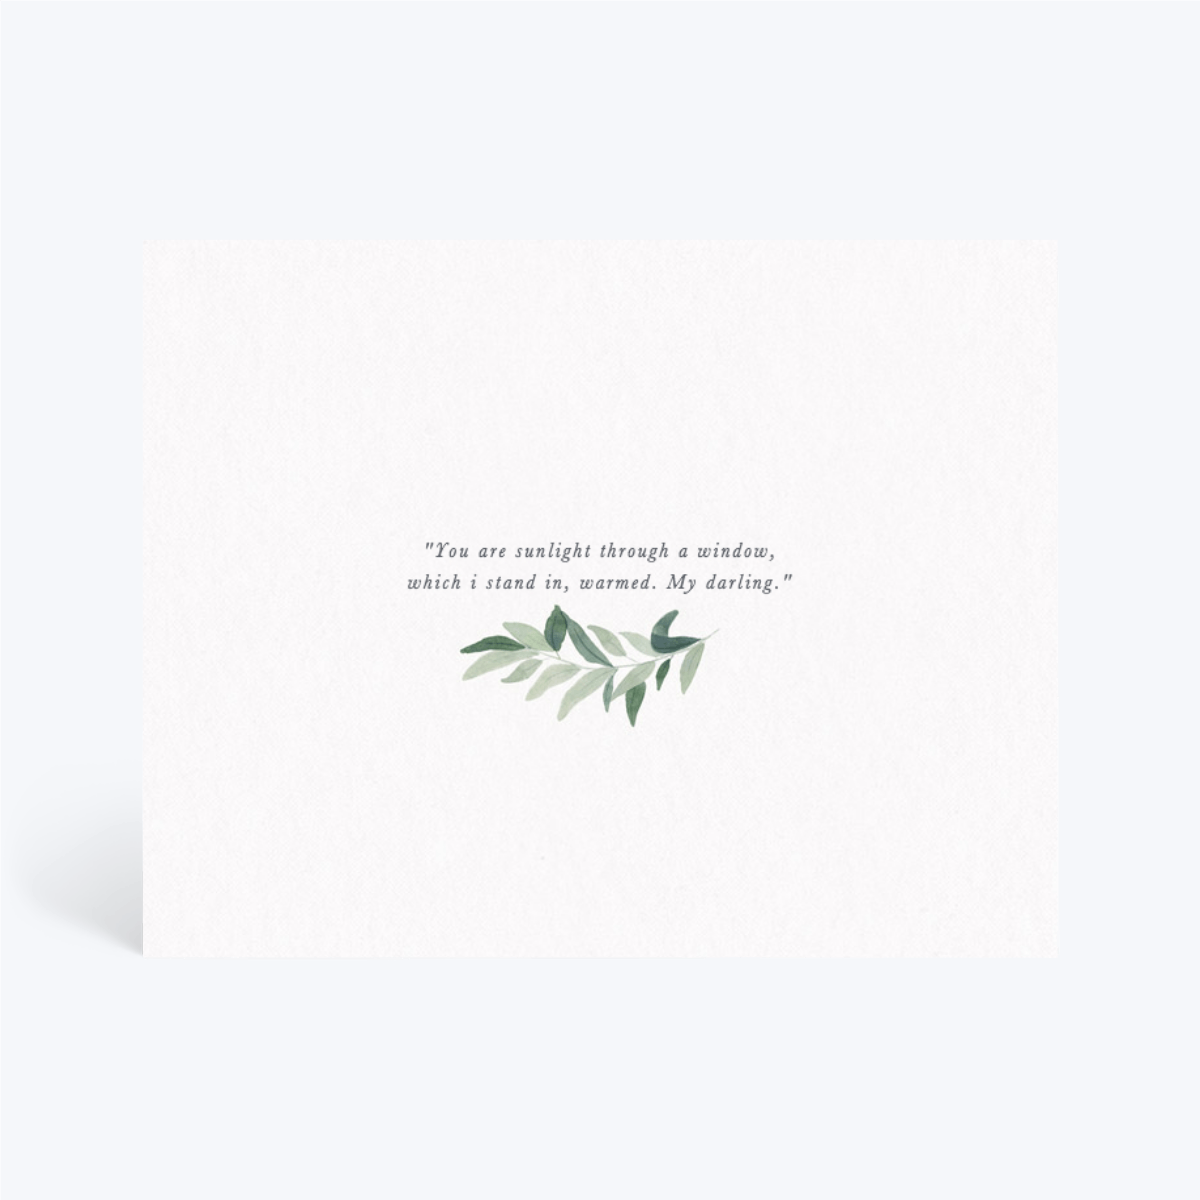 Https%3a%2f%2fwww.papier.com%2fproduct image%2f99866%2f29%2fgreen foliage 25569 back 1578307519.png?ixlib=rb 1.1